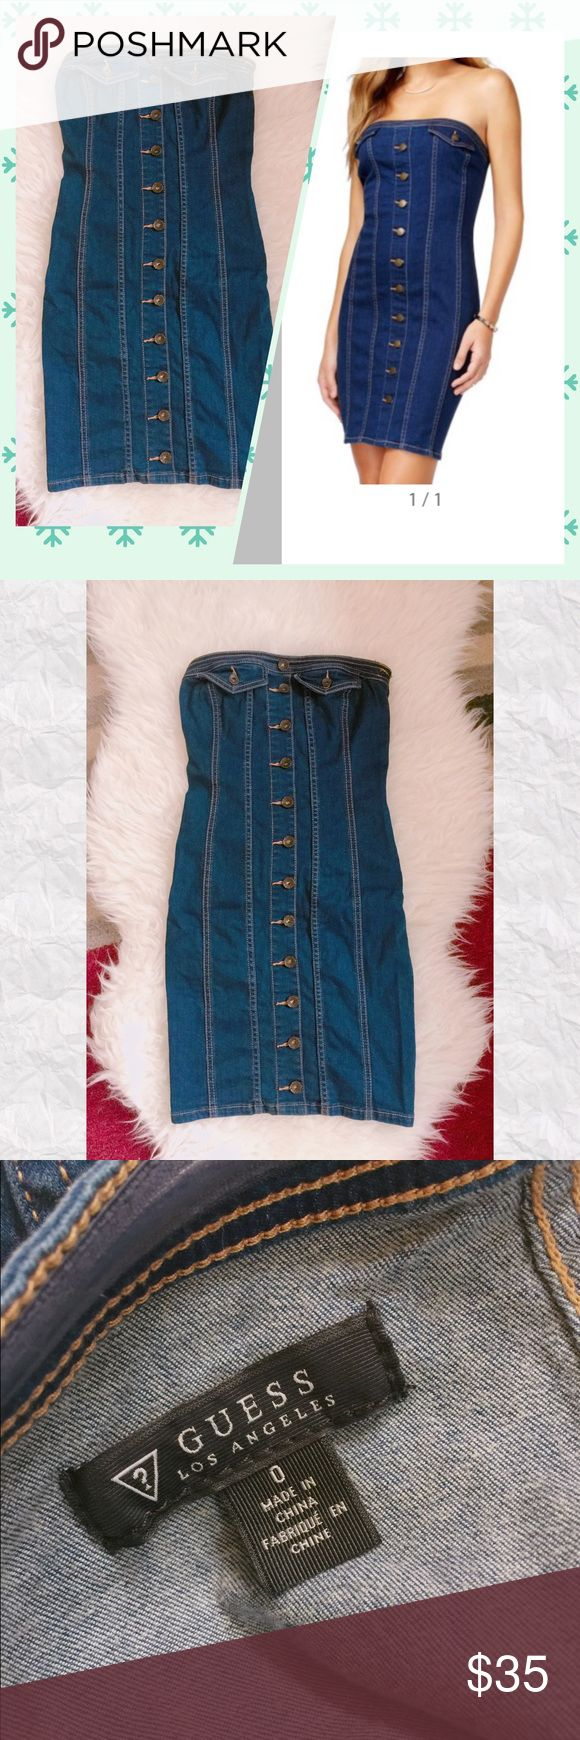 GUESS Strapless Denim Bodycon Dress Worn once. Condition: Excellent. Welcome to offer! No trades!! Gift with purchase:) Guess Dresses Strapless